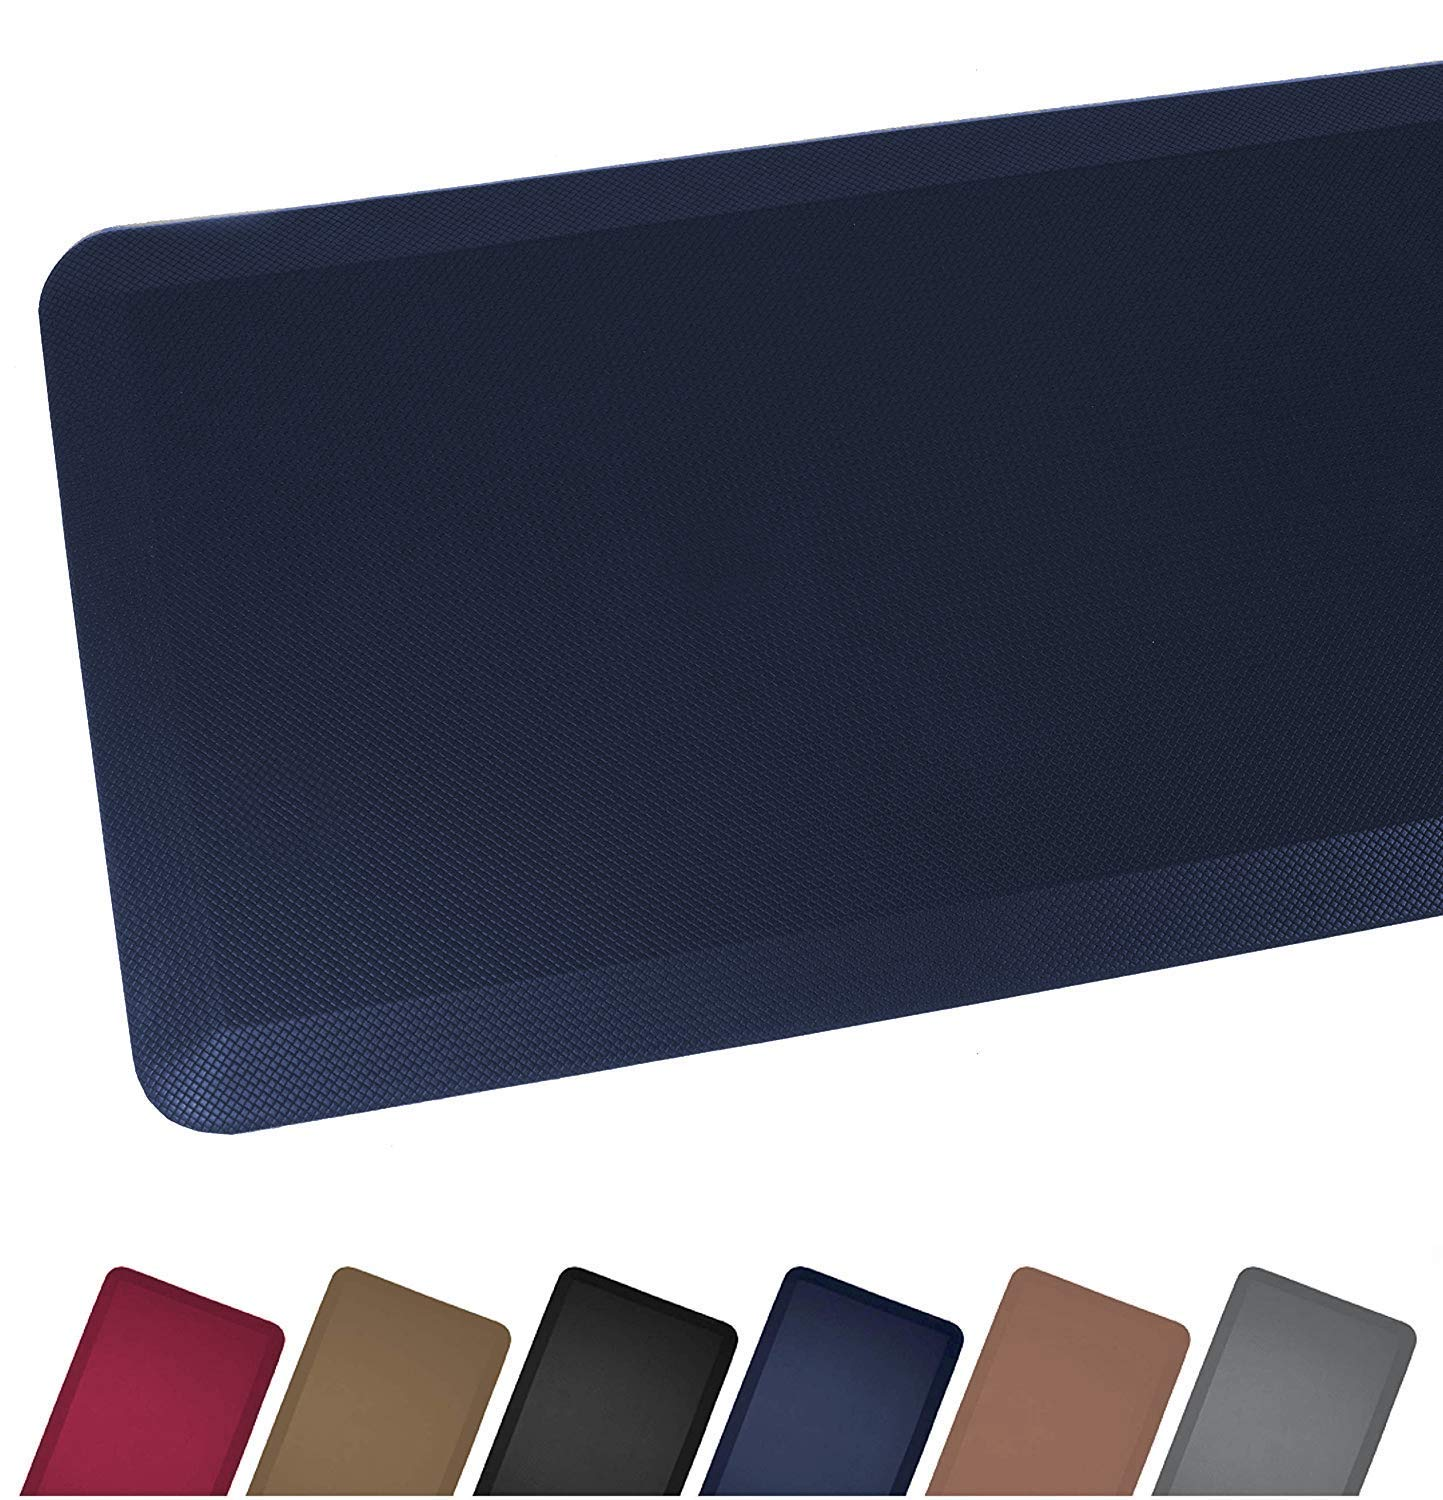 Anti Fatigue Comfort Floor Mat By Sky Mats - Commercial Grade Quality Perfect for Standup Desks, Kitchens, and Garages - Relieves Foot, Knee, and Back Pain, 20x32x3/4-Inch, Dark Blue